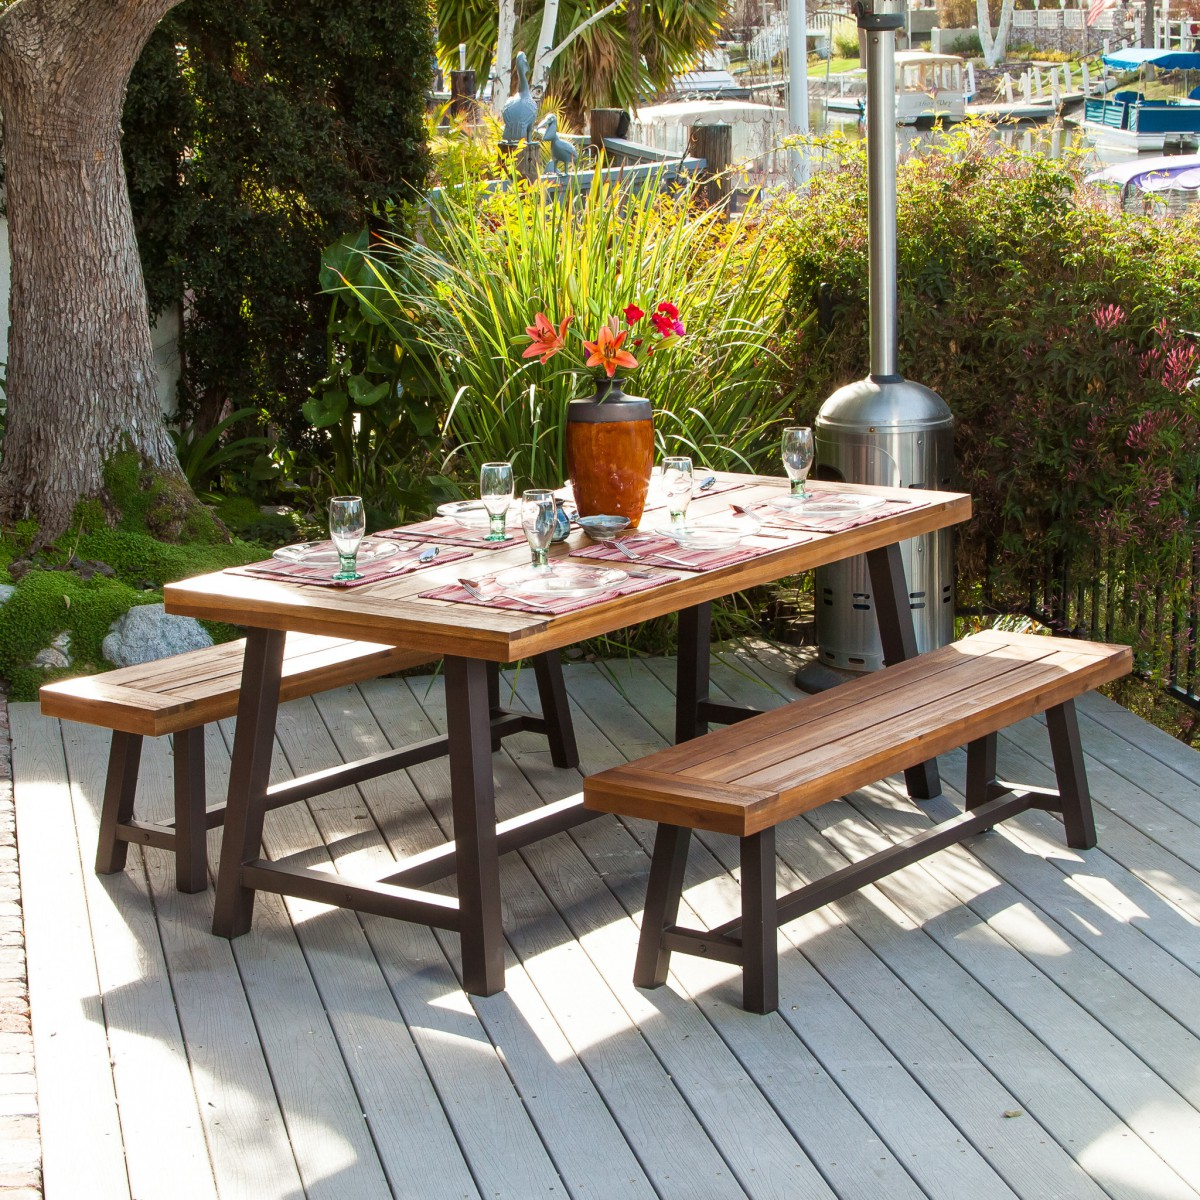 Cute And Functional Wooden Picnic Bench